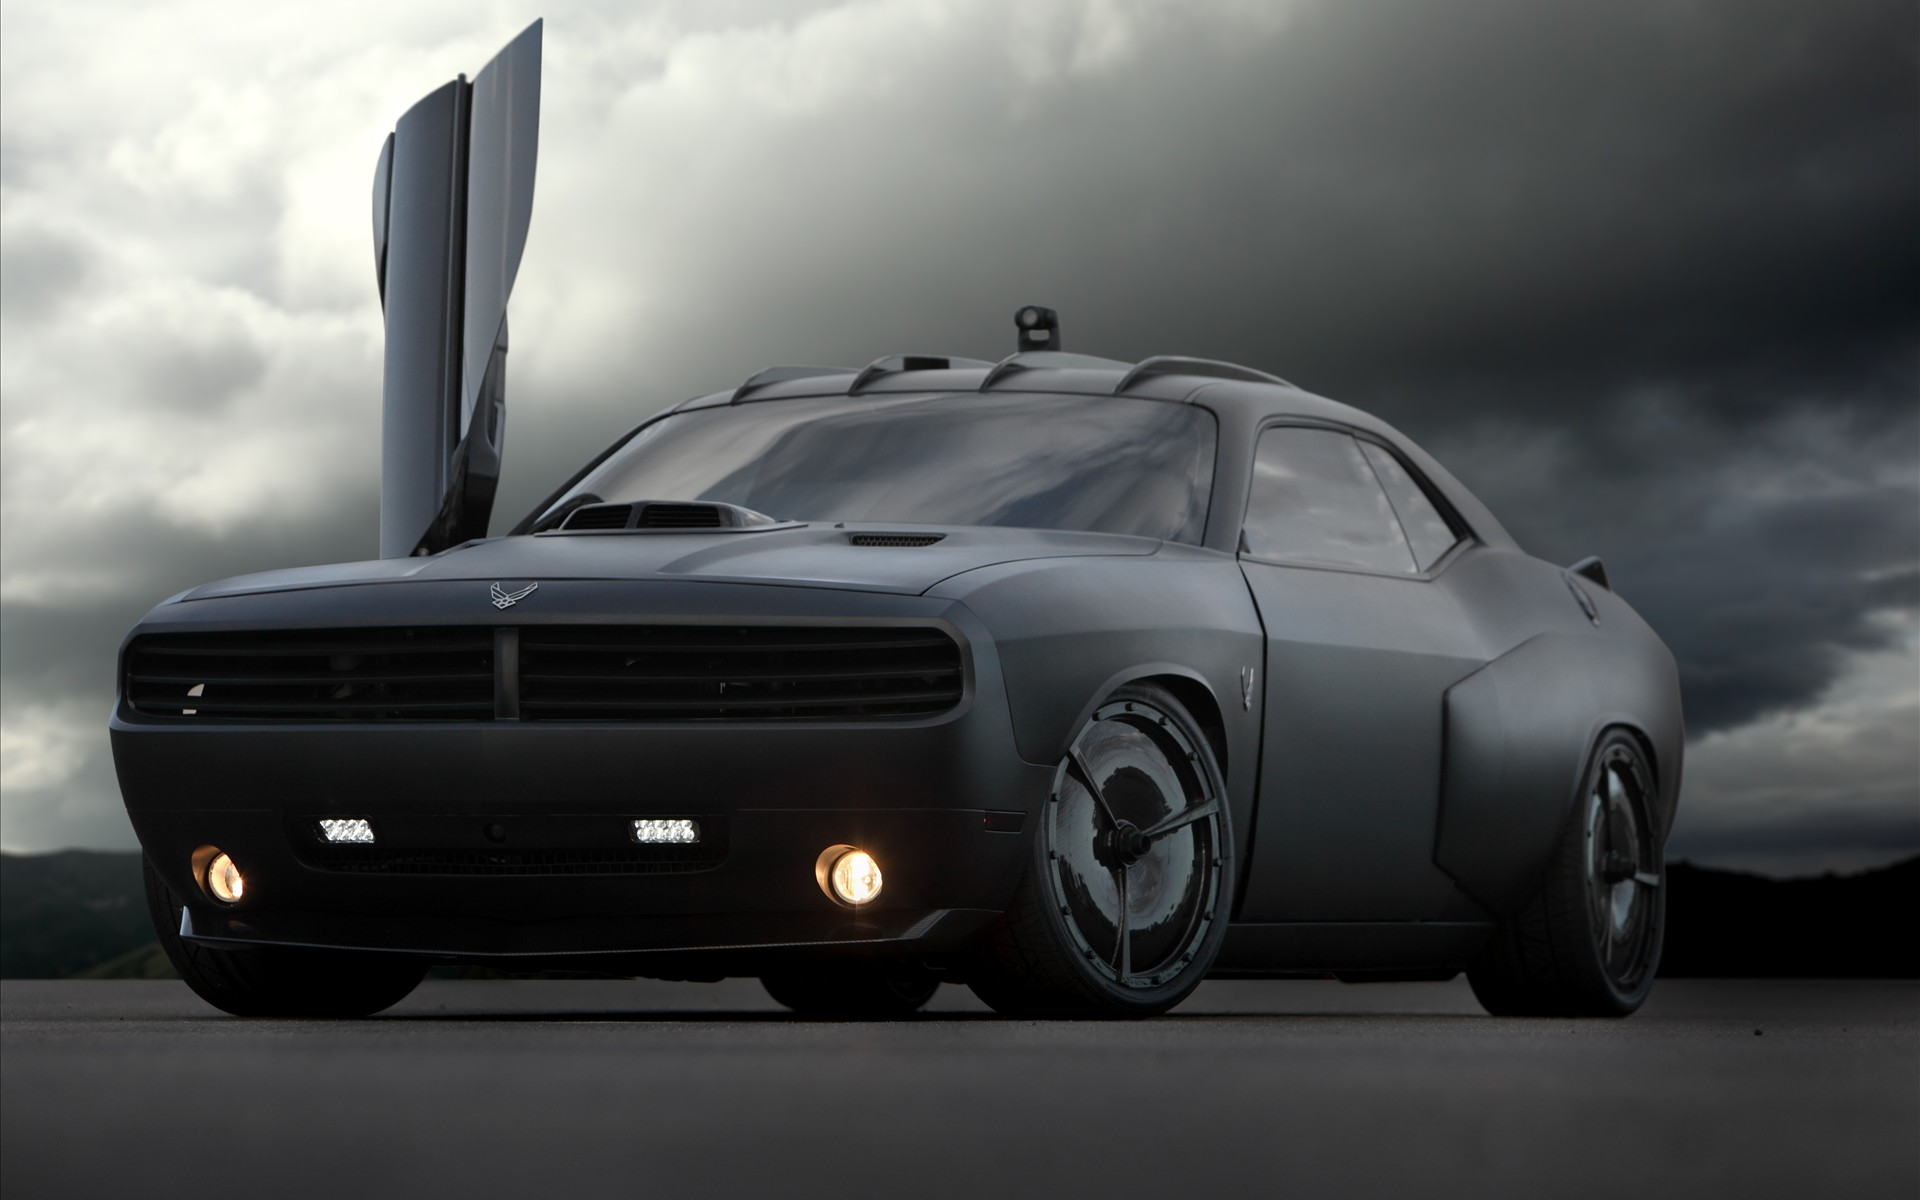 picture of Dodge Challenger, 2009, USAF Vapor